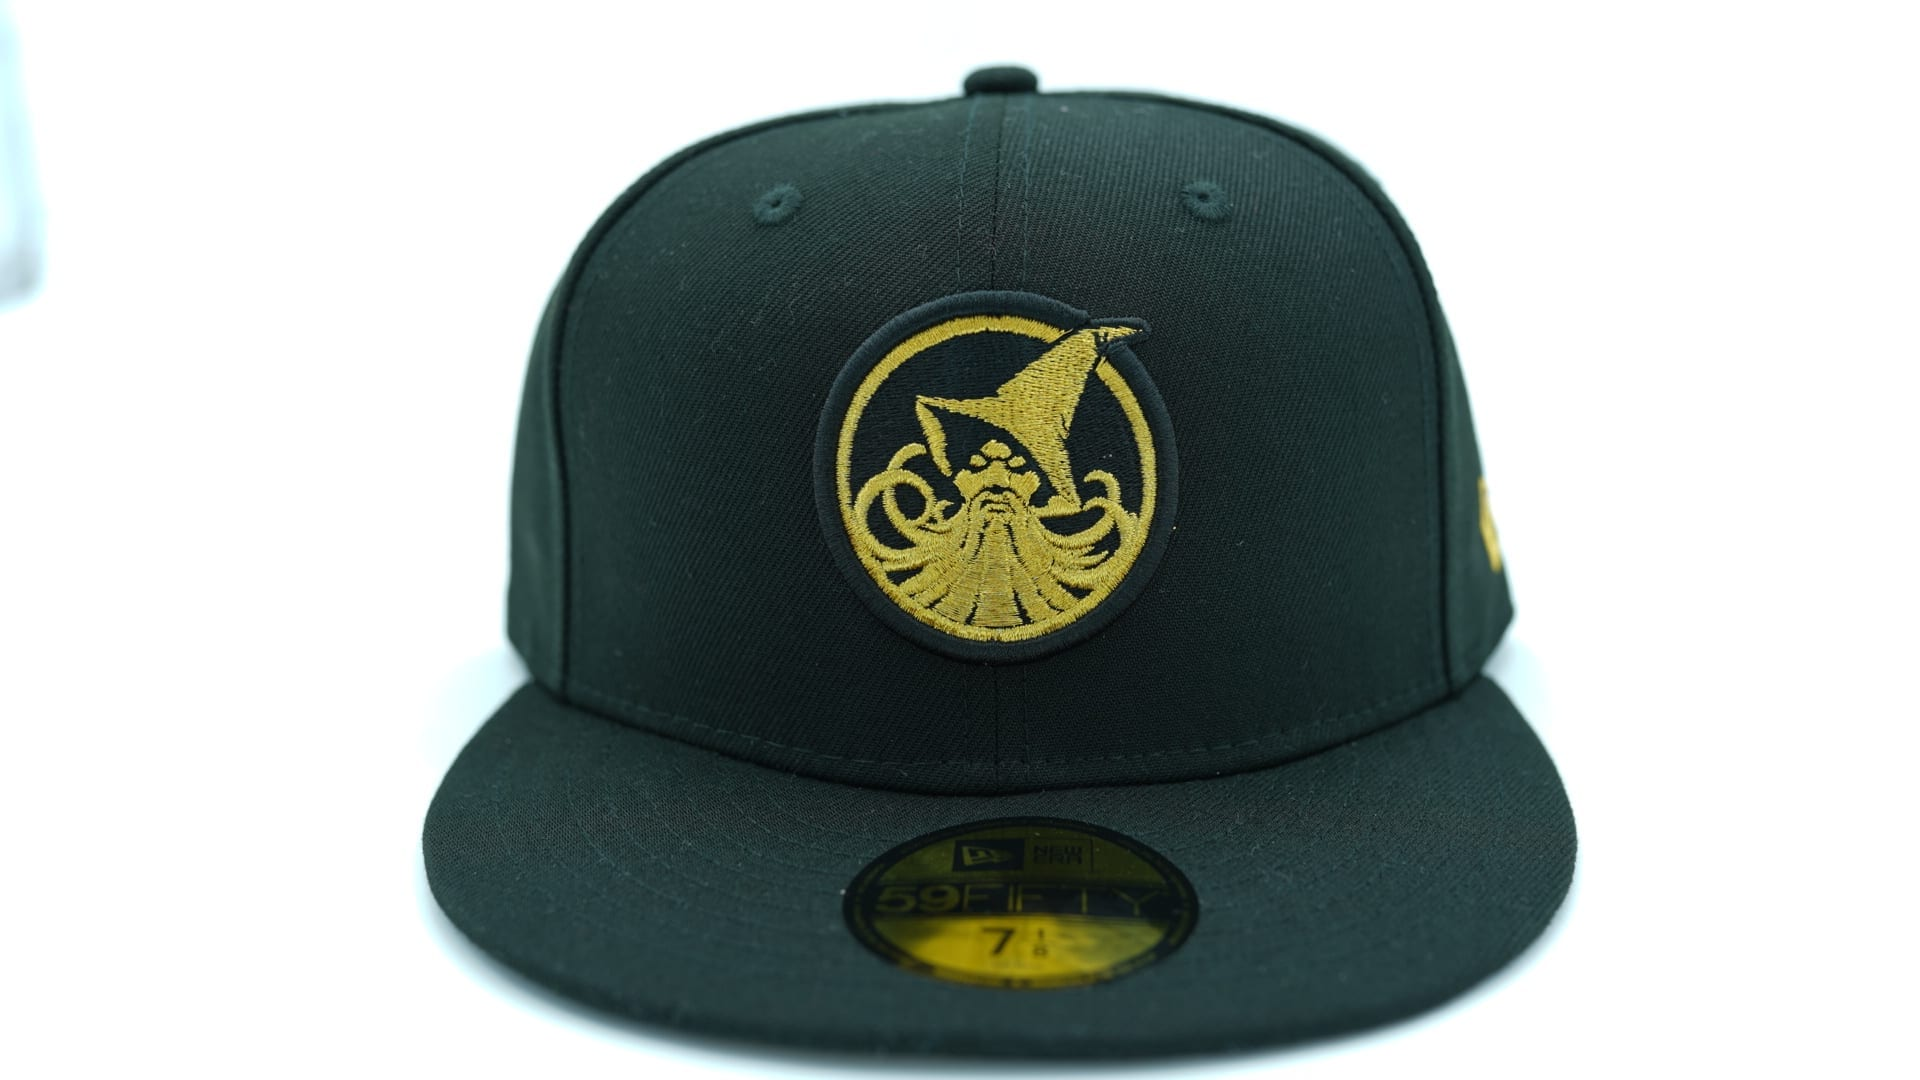 Black Satin Monogram 59Fifty Fitted Cap by REIGNING CHAMP x NEW ERA